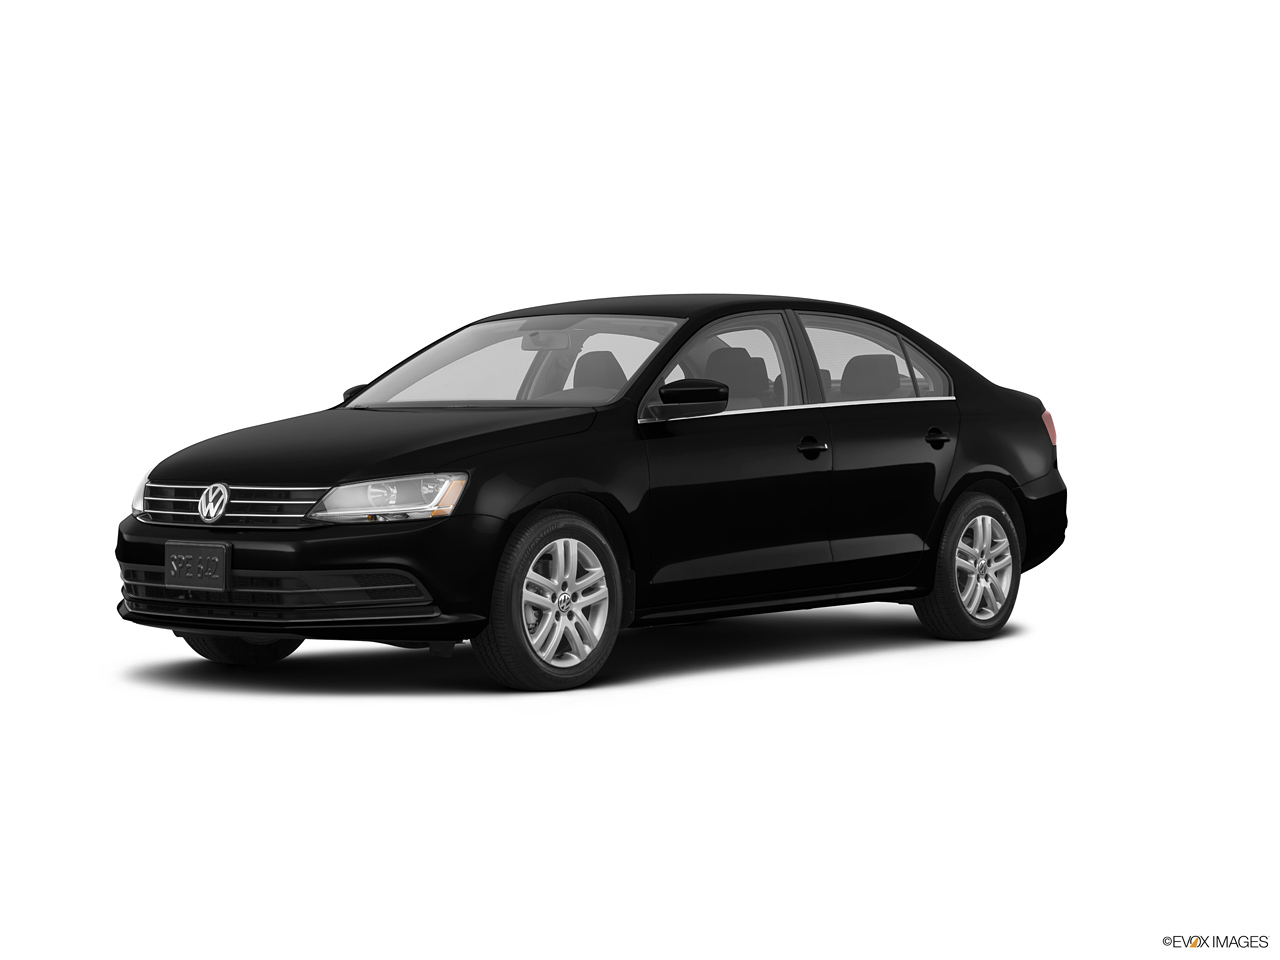 Car List for Volkswagen Jetta 2017 2 0 SE UAE